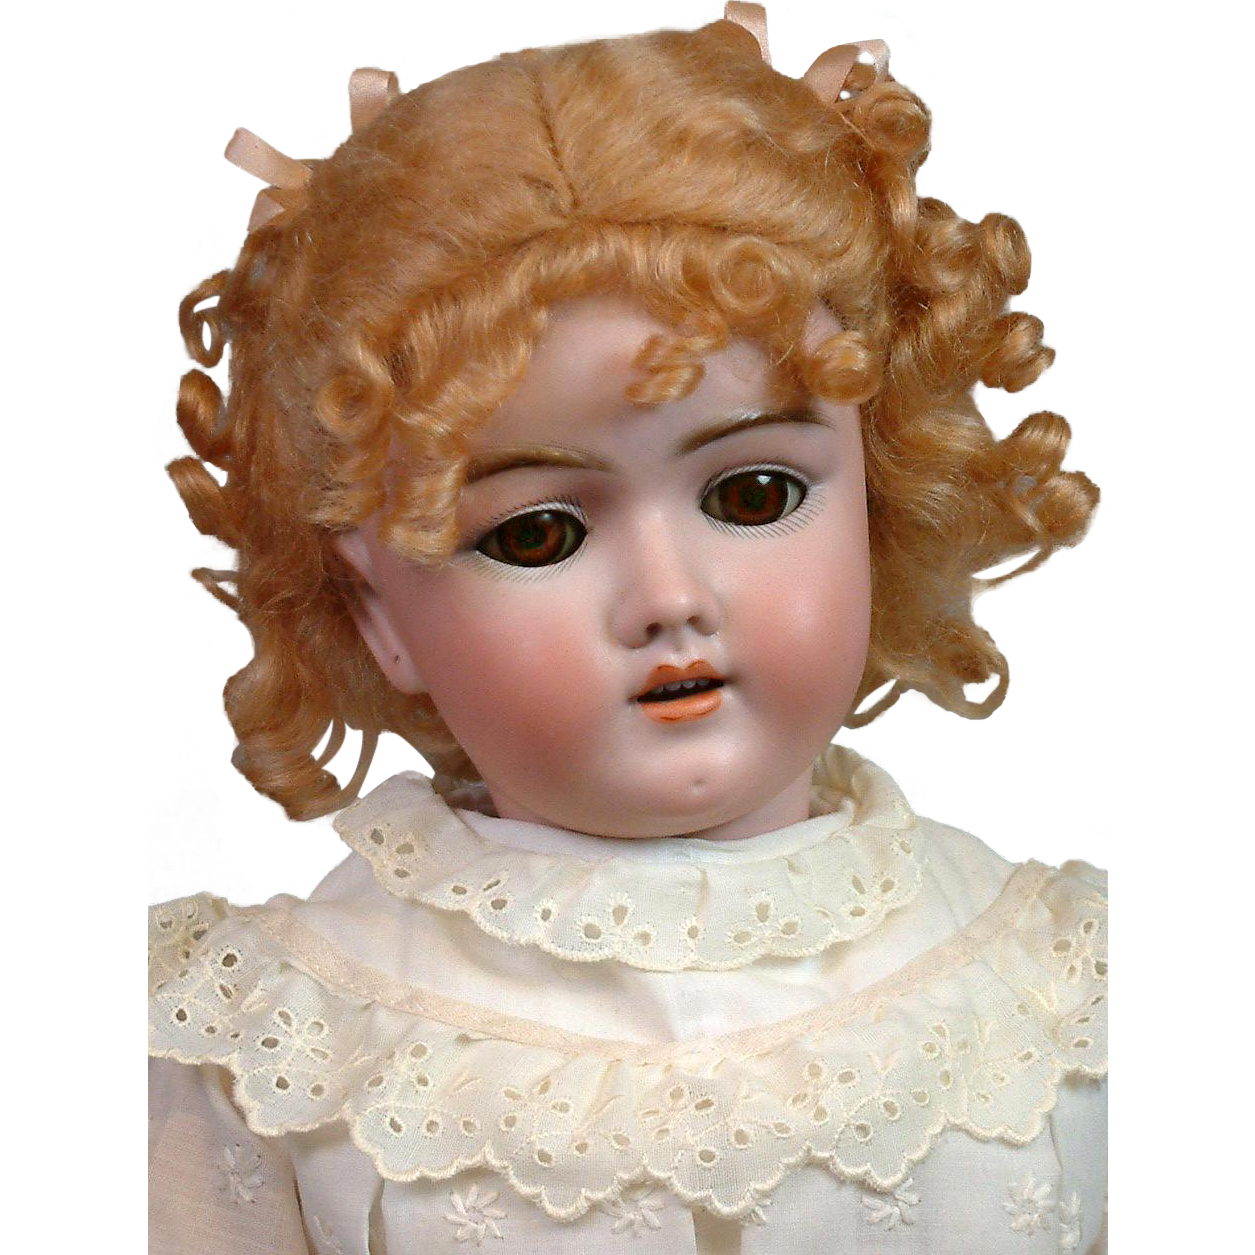 "Darling 24"" Handwerck 69 Antique Bisque Bebe Doll on Original Handwerck Body"